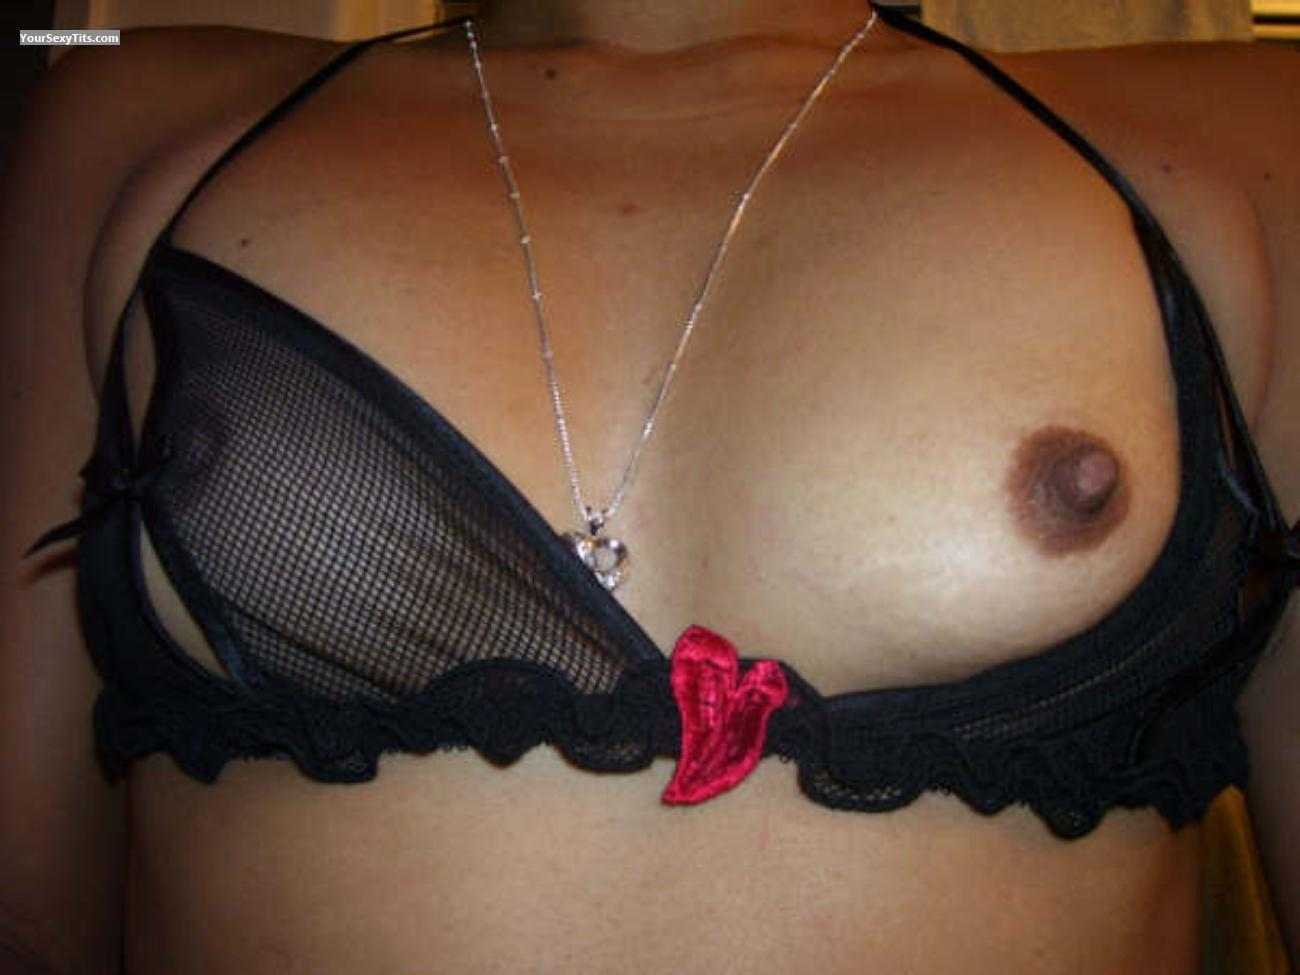 My Small Tits Selfie by Yvette